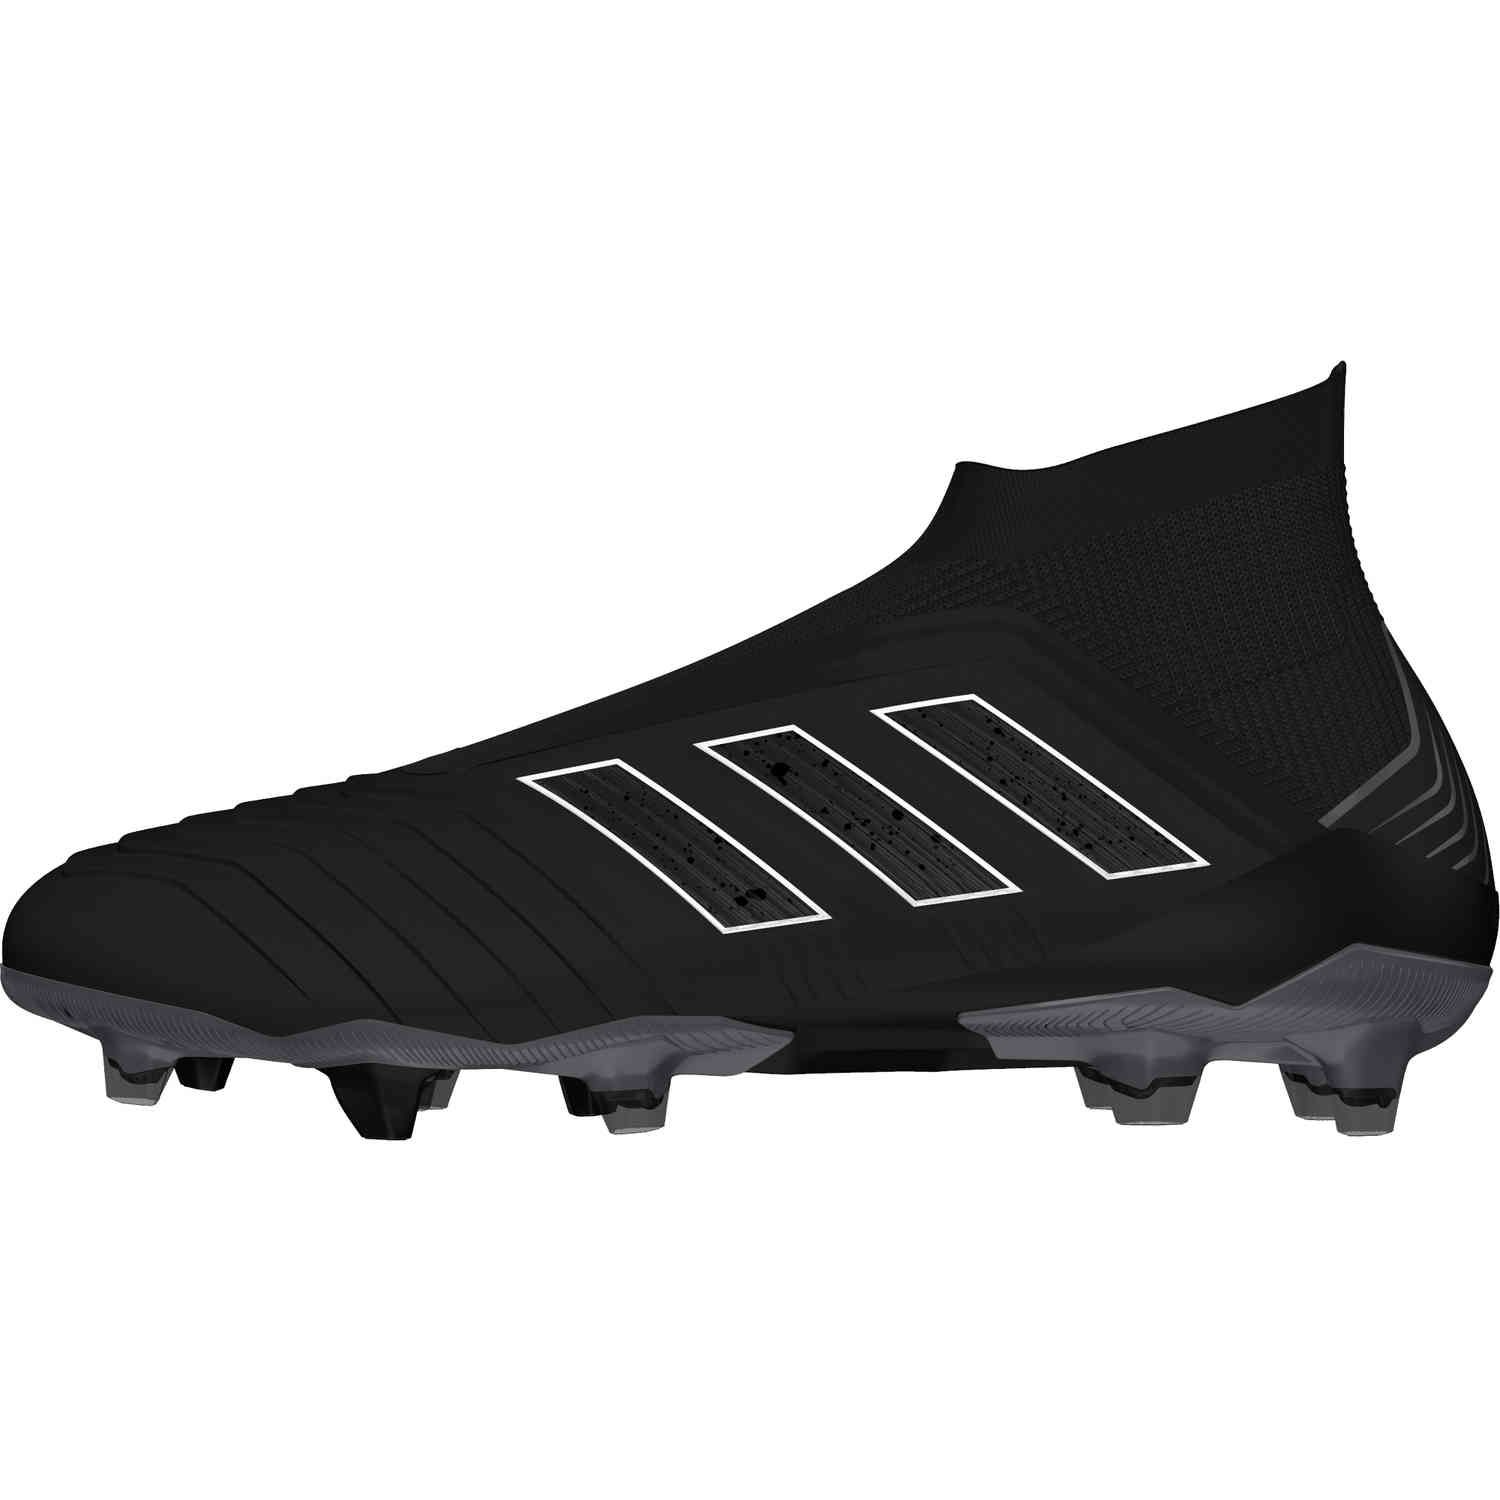 super cute b6cbd e014a Shadow Mode pack adidas Predator 18+ Hot at www.soccerpro.com